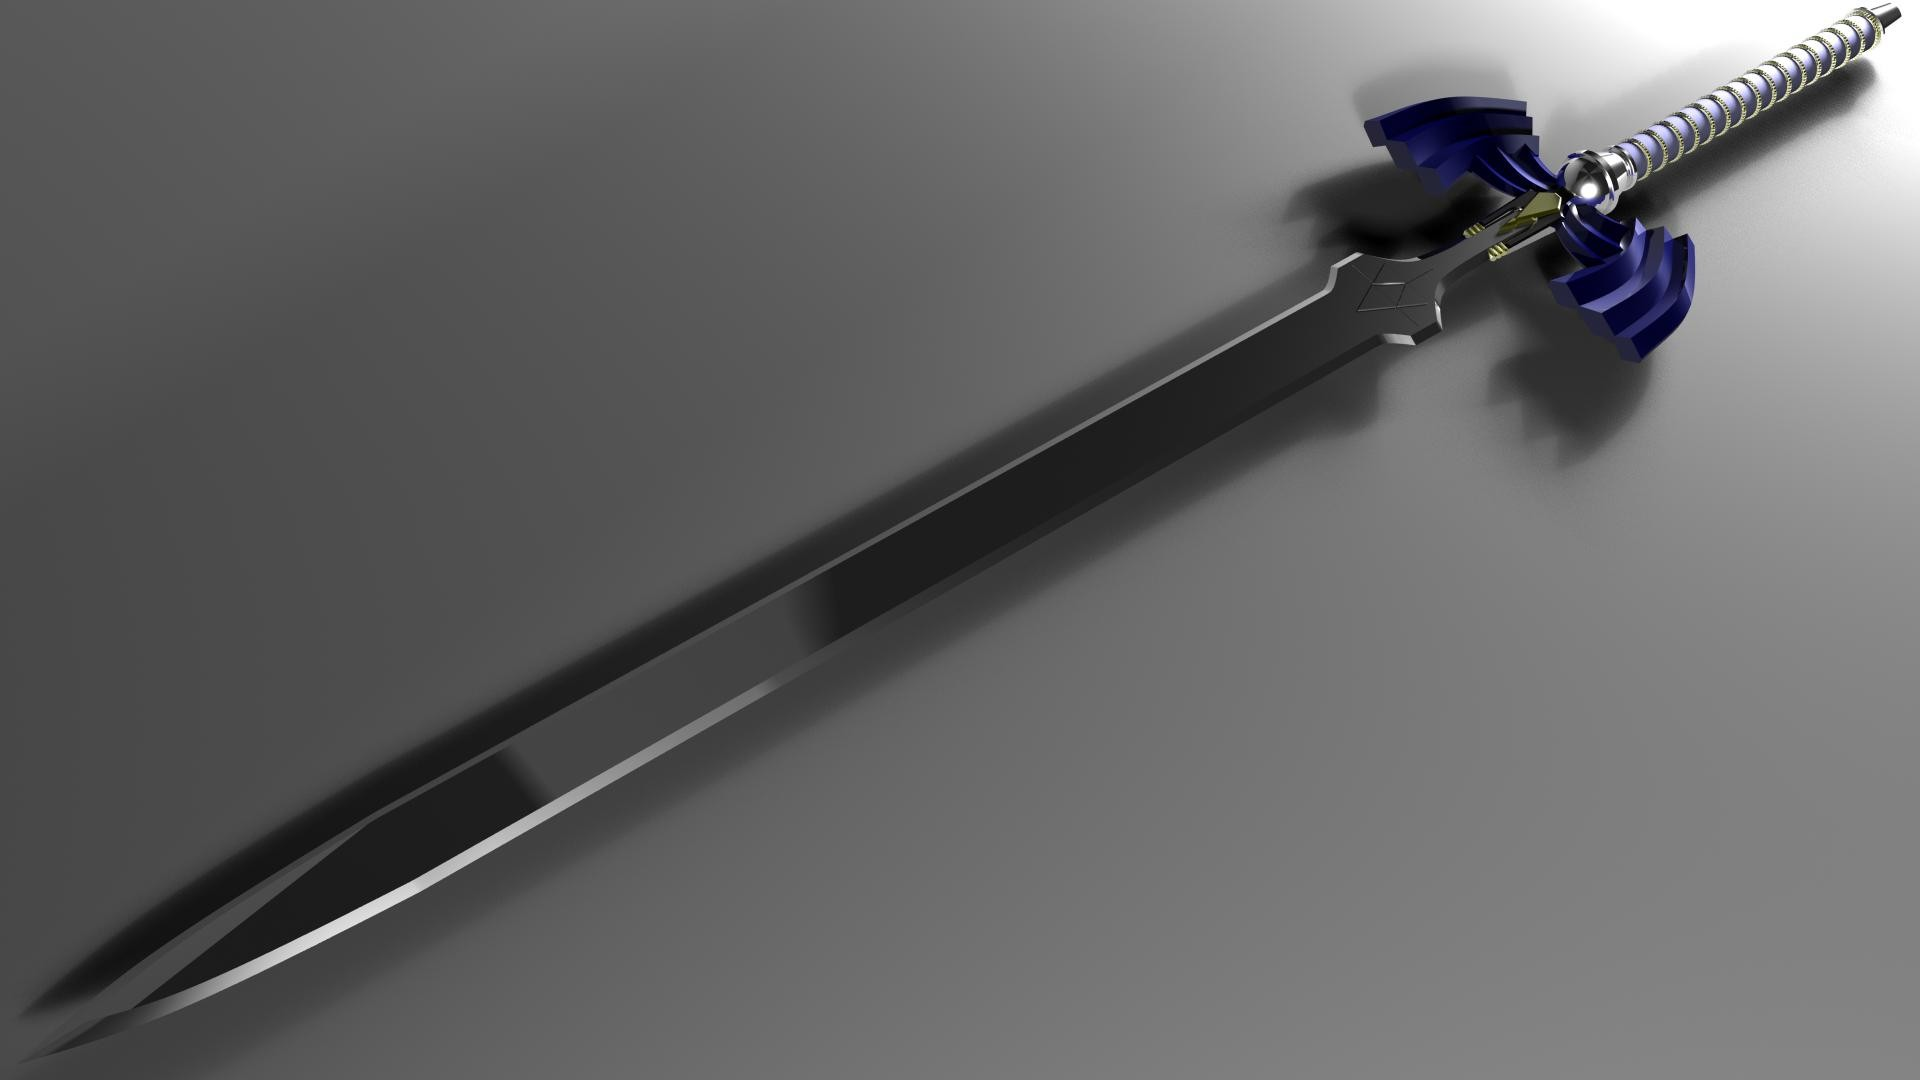 Sword wallpaper ·① Download free awesome backgrounds for ...